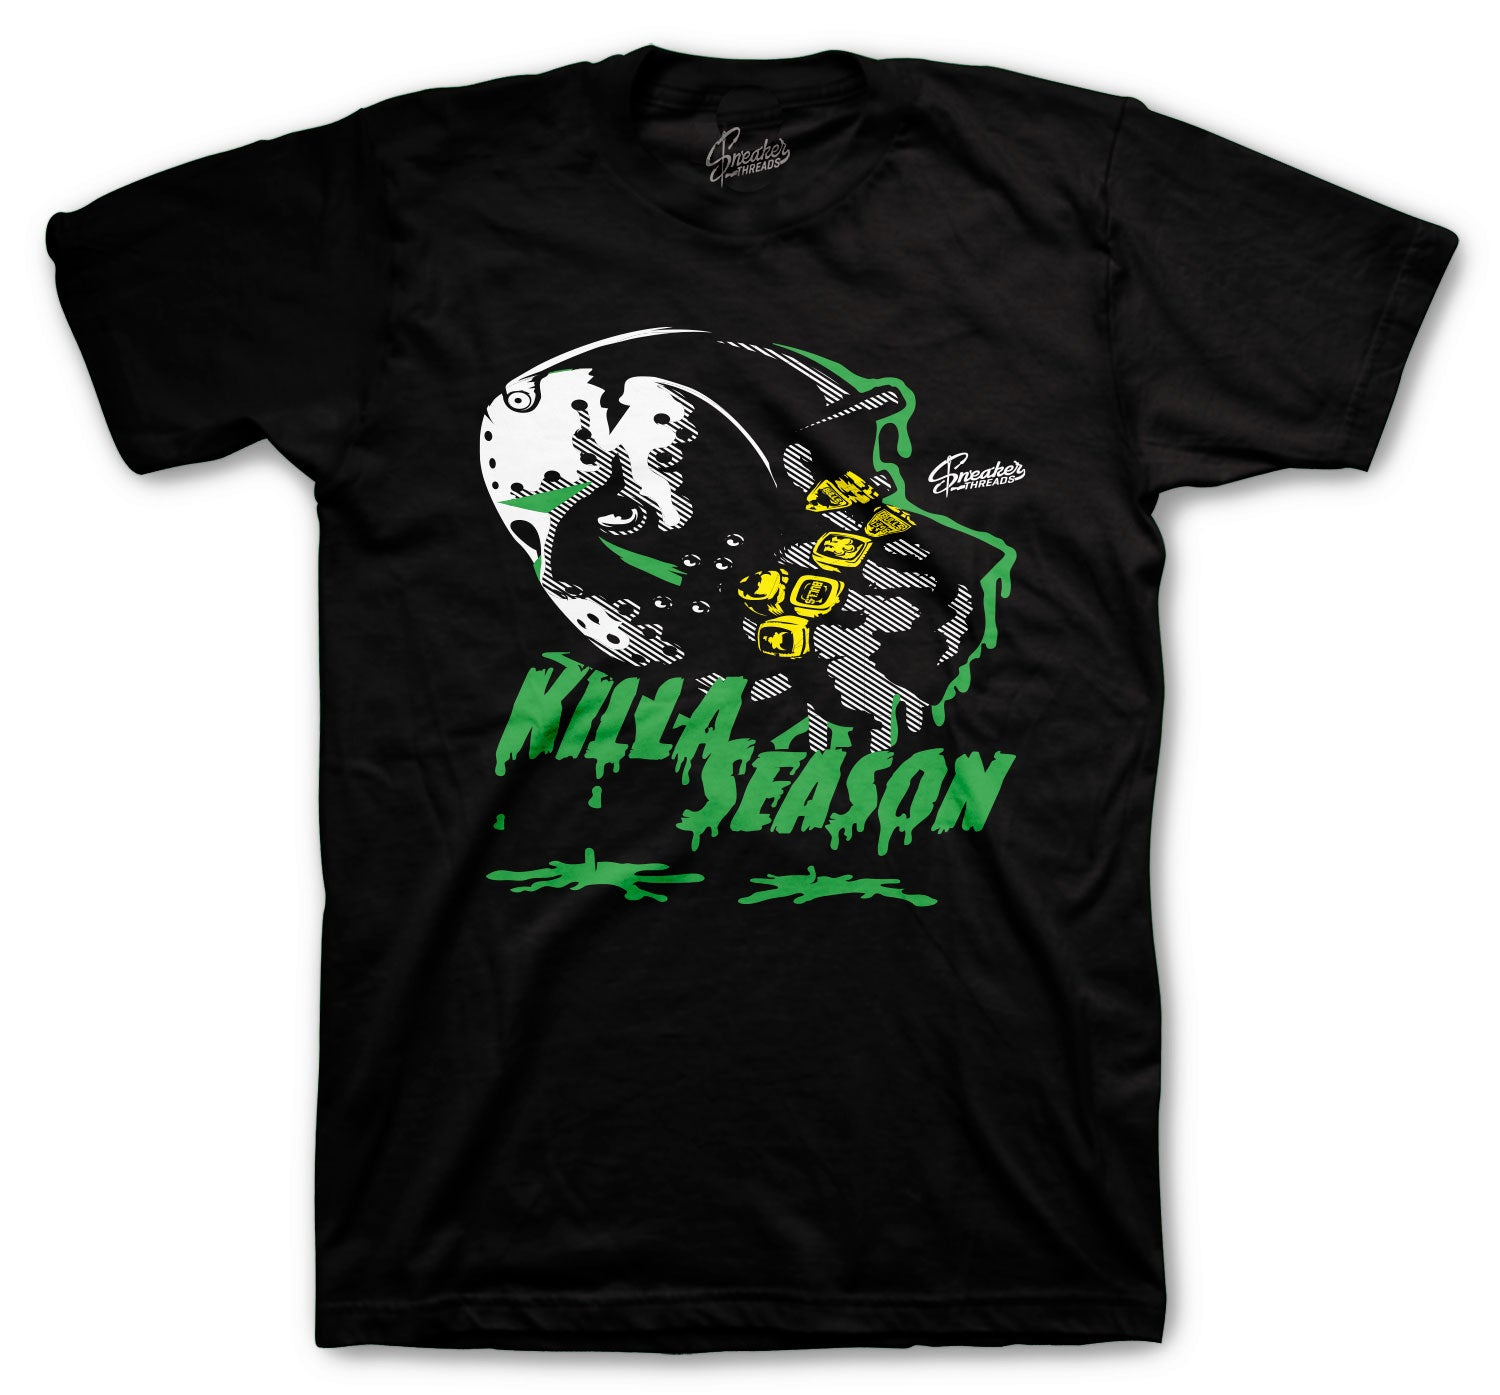 Jordan 5 Oregon Killa Season Shirt